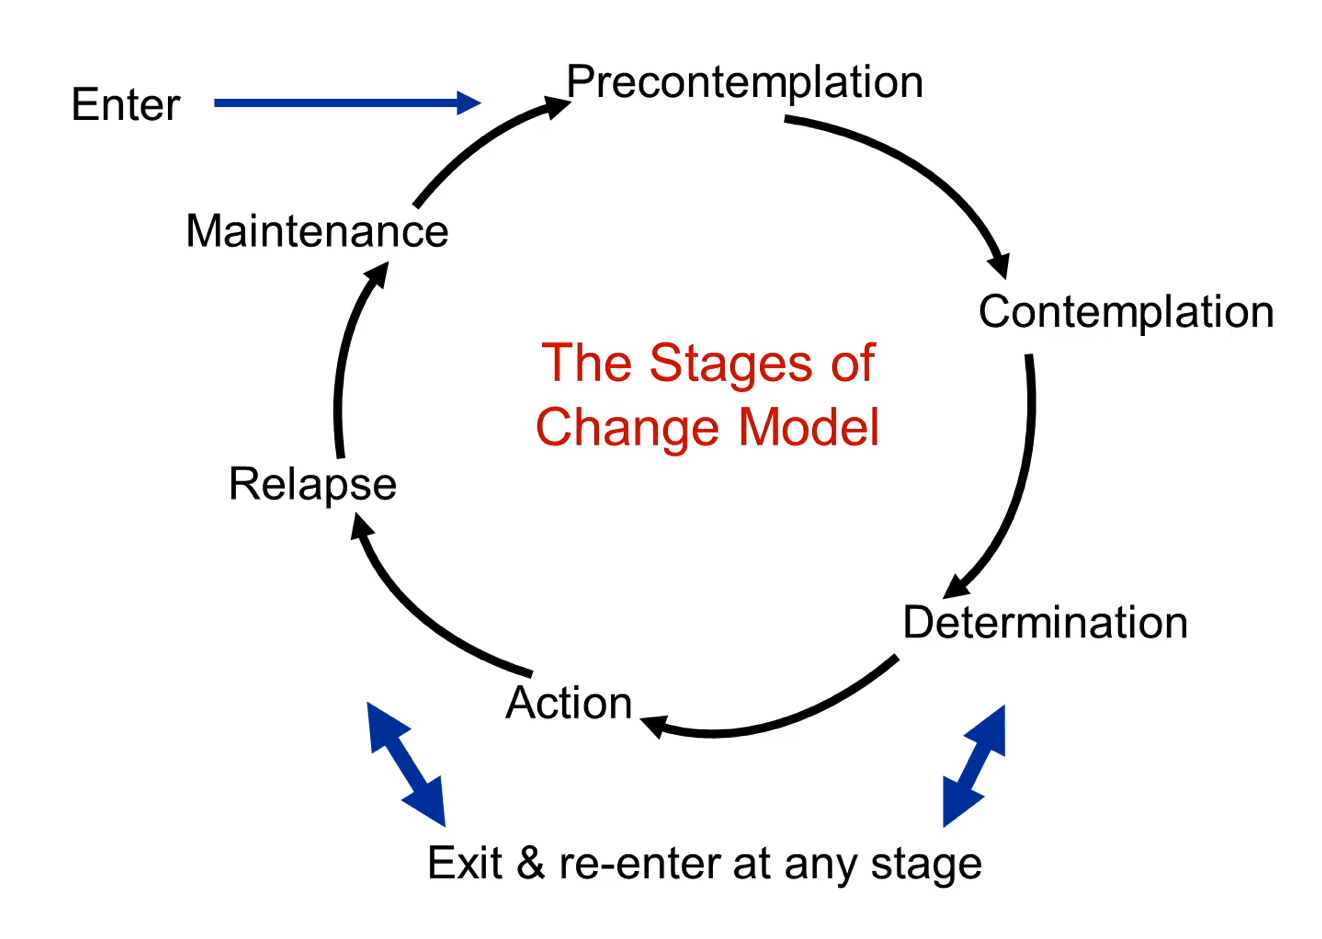 The Stages of Change Model as applied to customer psychology in ecommerce